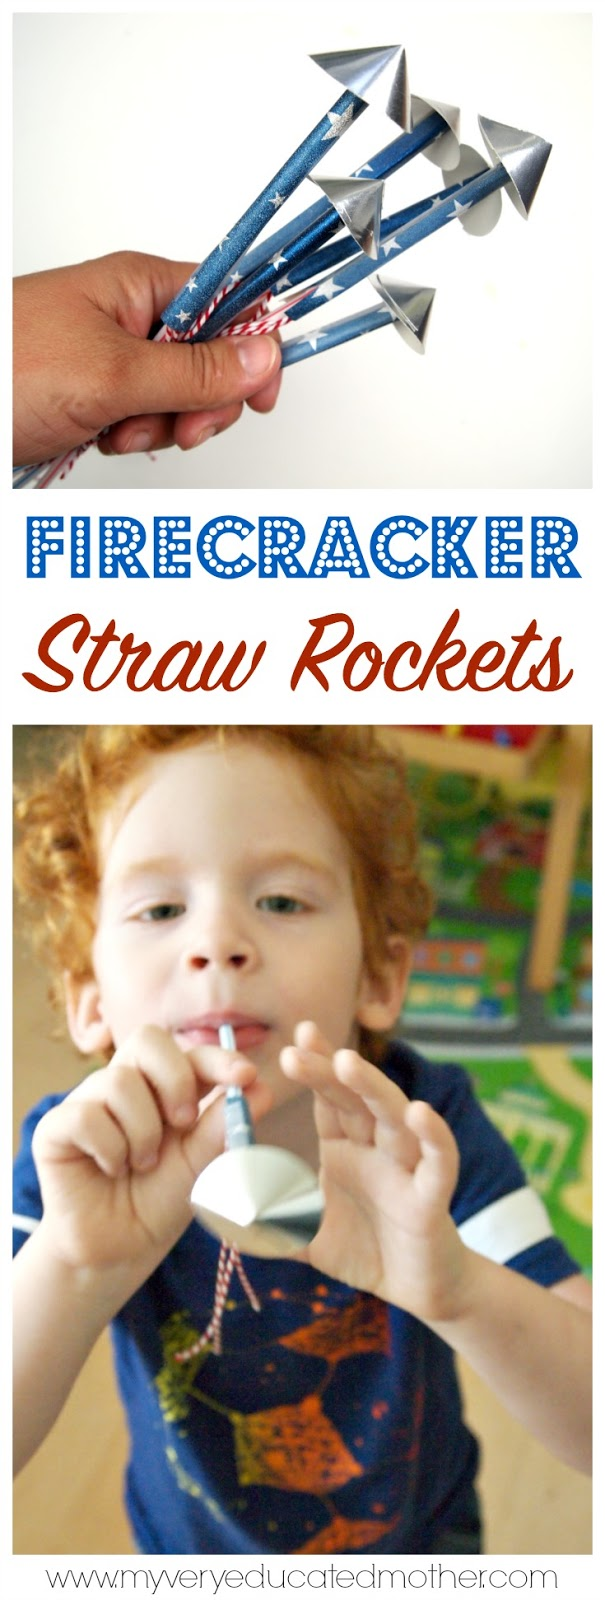 Kids like spitting things, it's a fact of life. Keep it clean and fun with these firecracker straw rockets!